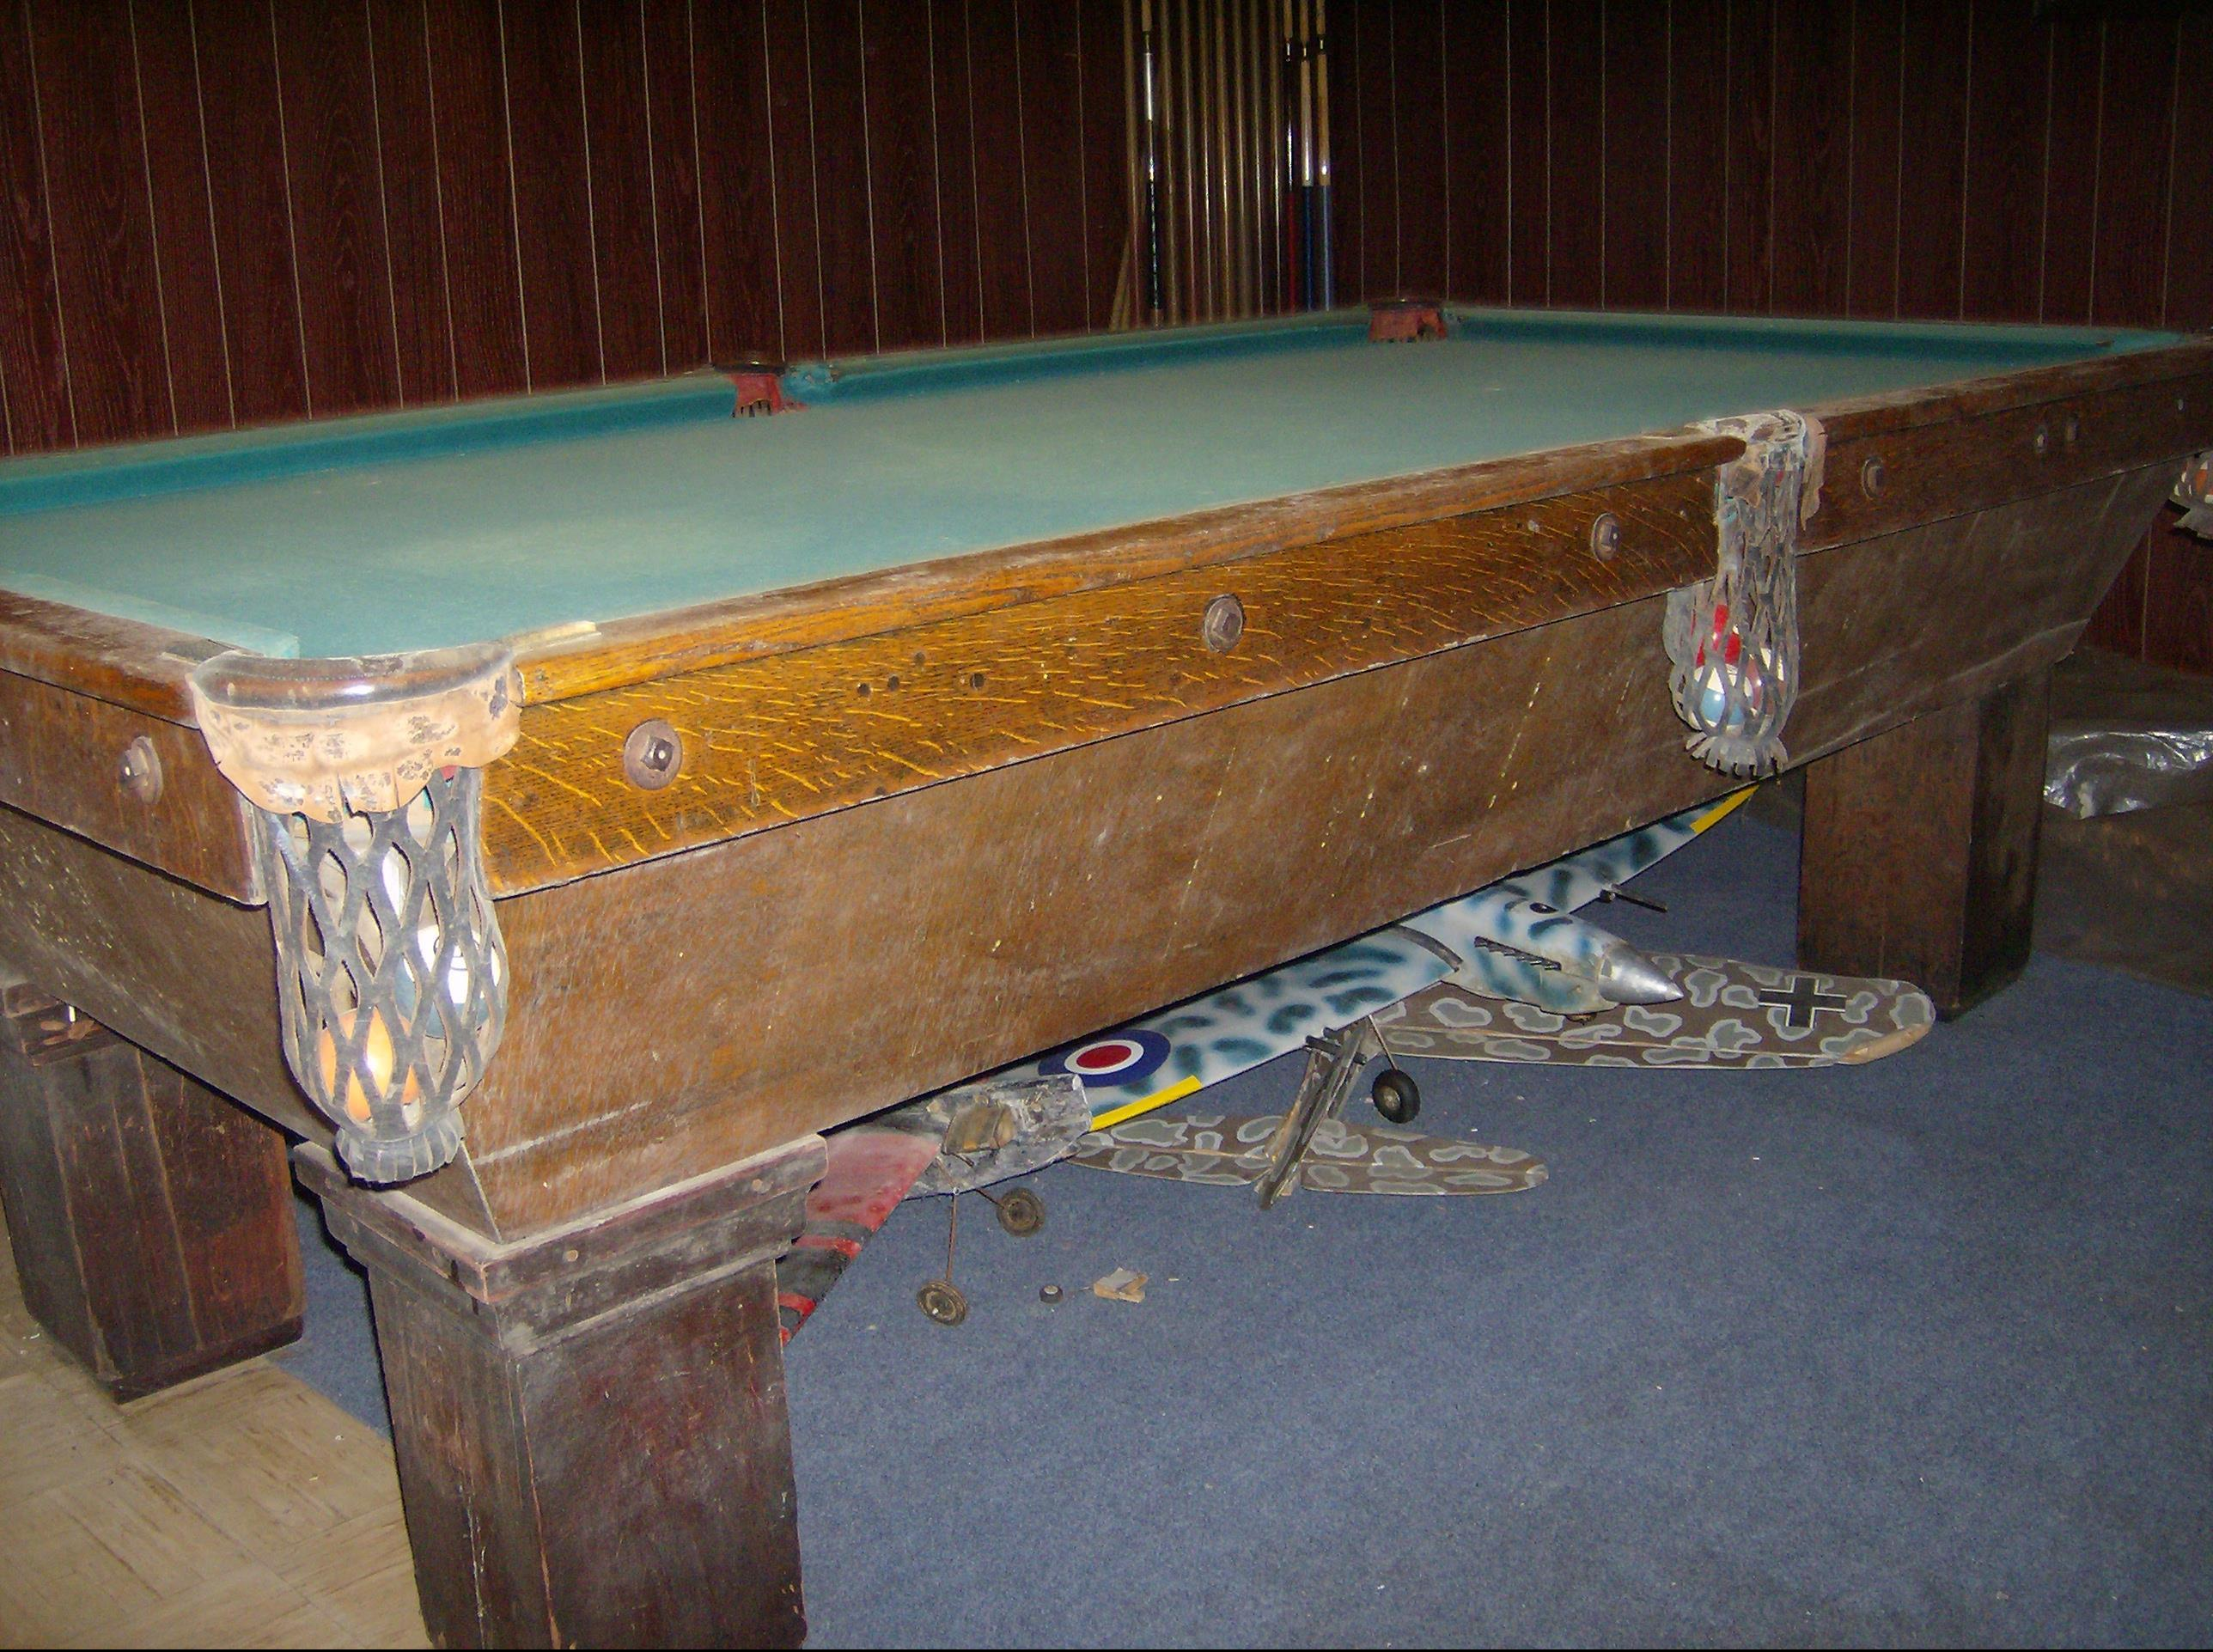 Brunswick Victor Pool Table Restoration - Pool table resurfacing